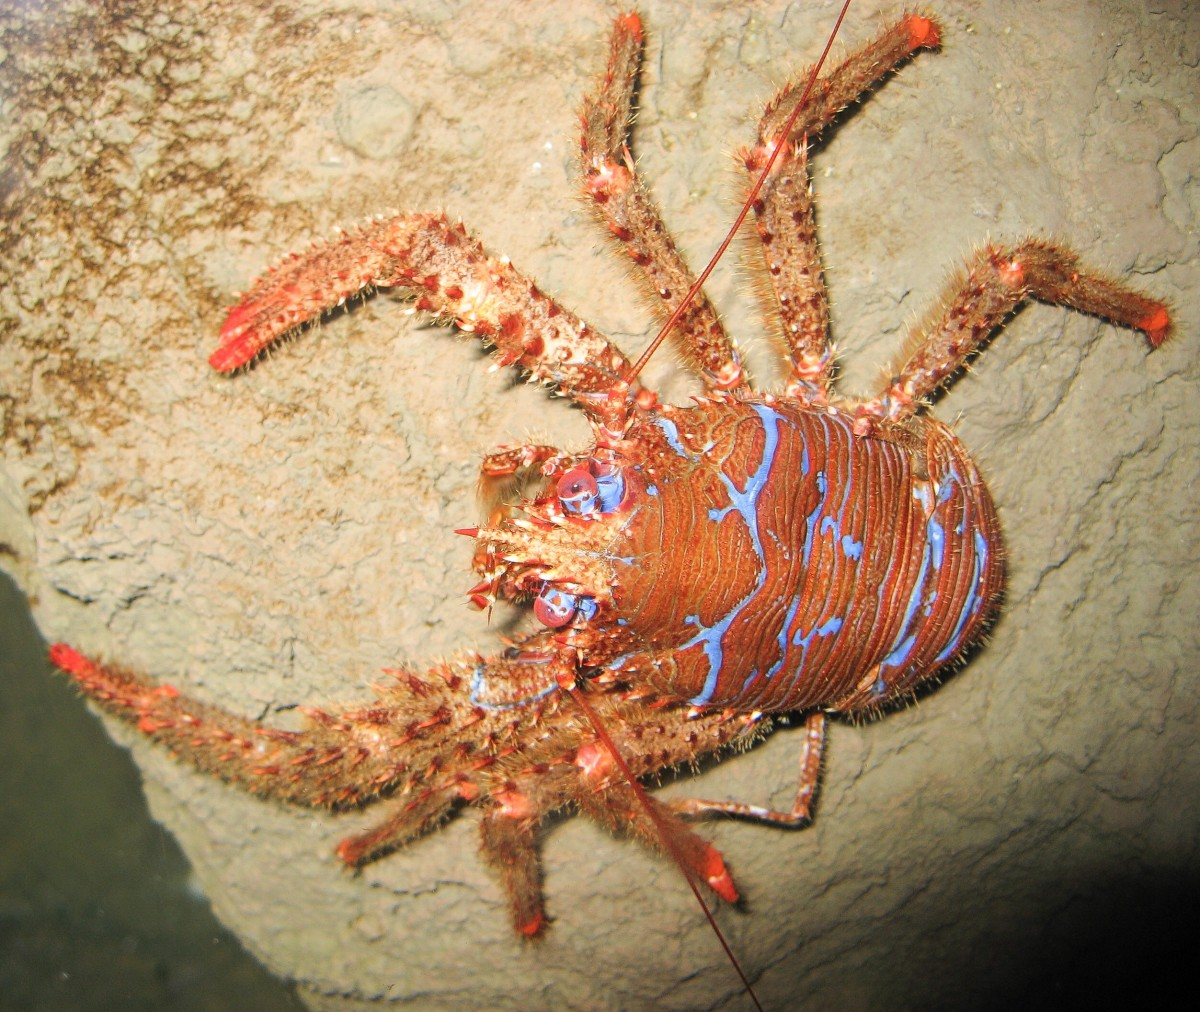 An example of a squat lobster (Galathea strigosa)